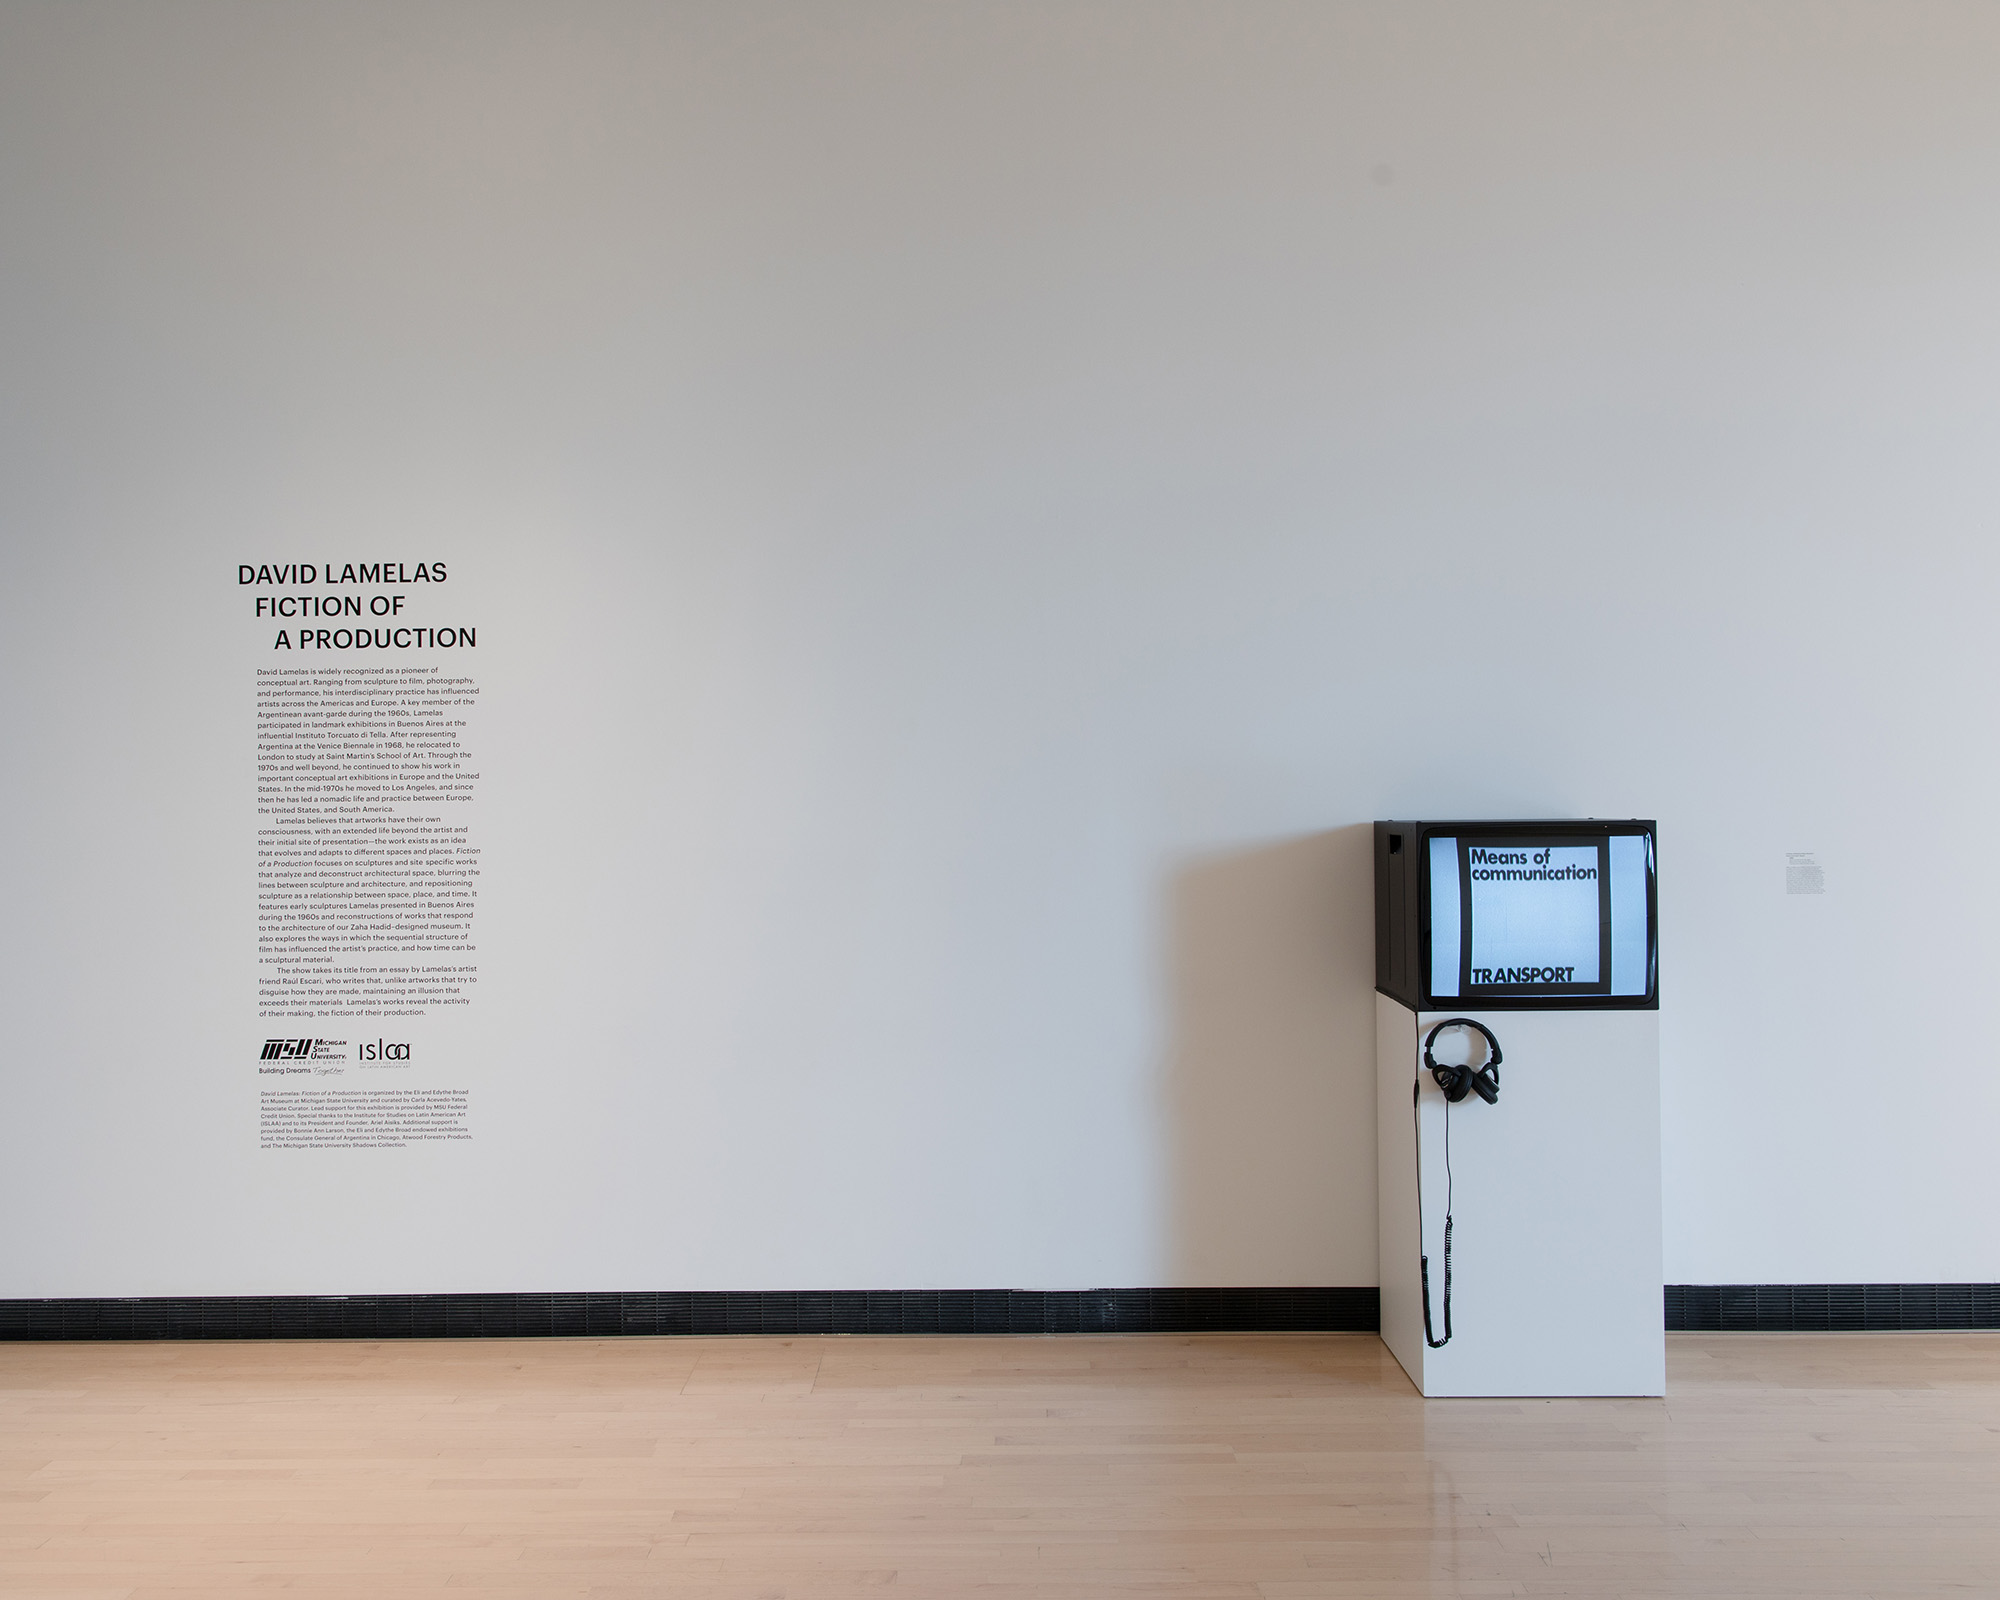 <i>David Lamelas: Fiction of a Production</i>, installation view at the Eli and Edythe Broad Art Museum at Michigan State University, 2018. Photo: Eat Pomegranate Photography